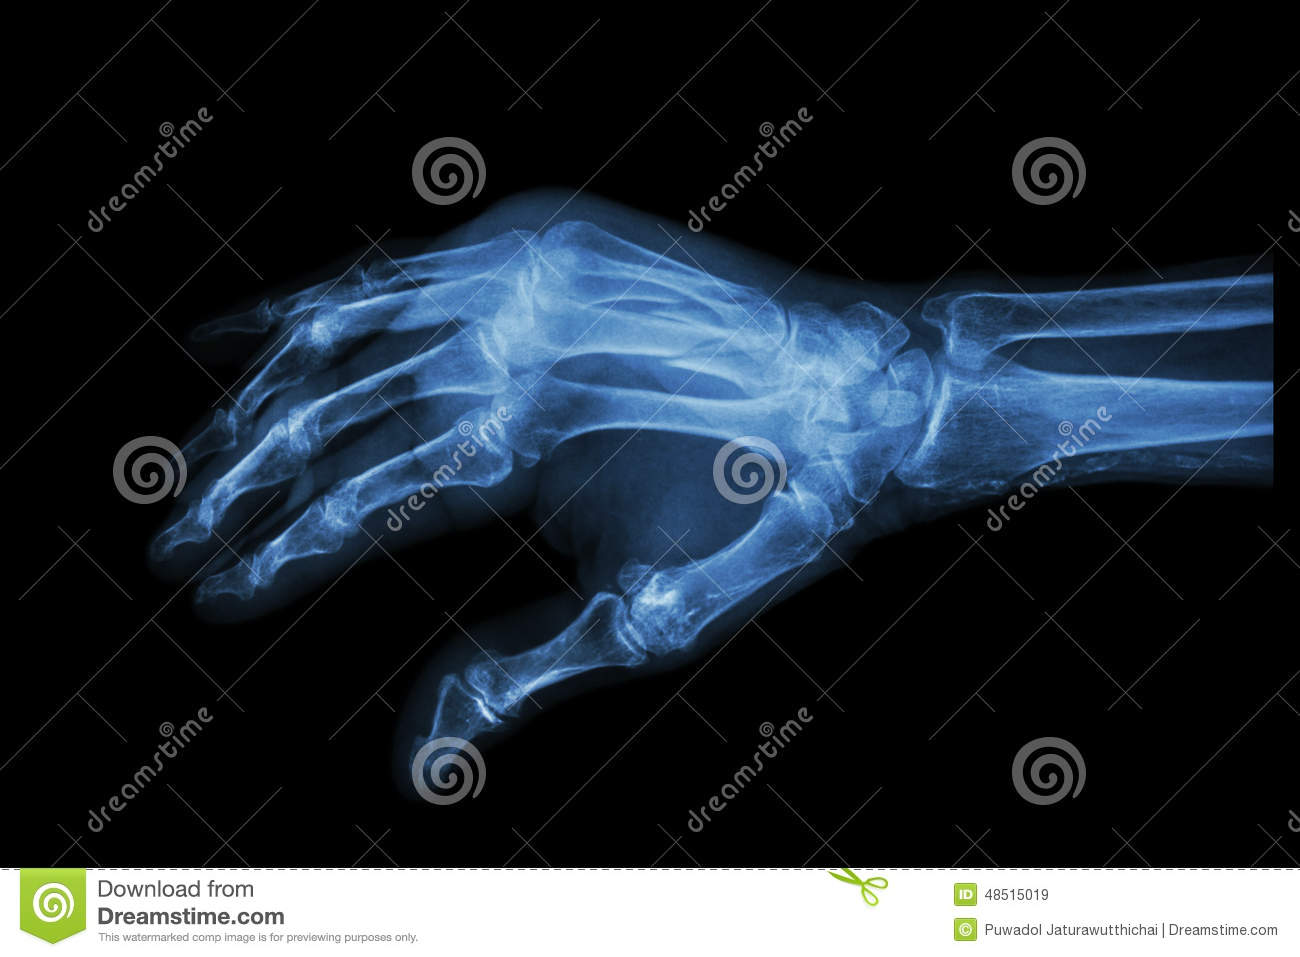 Fracture At 3rd And 4th Metacarpal Bone Stock Image - Image of human ...